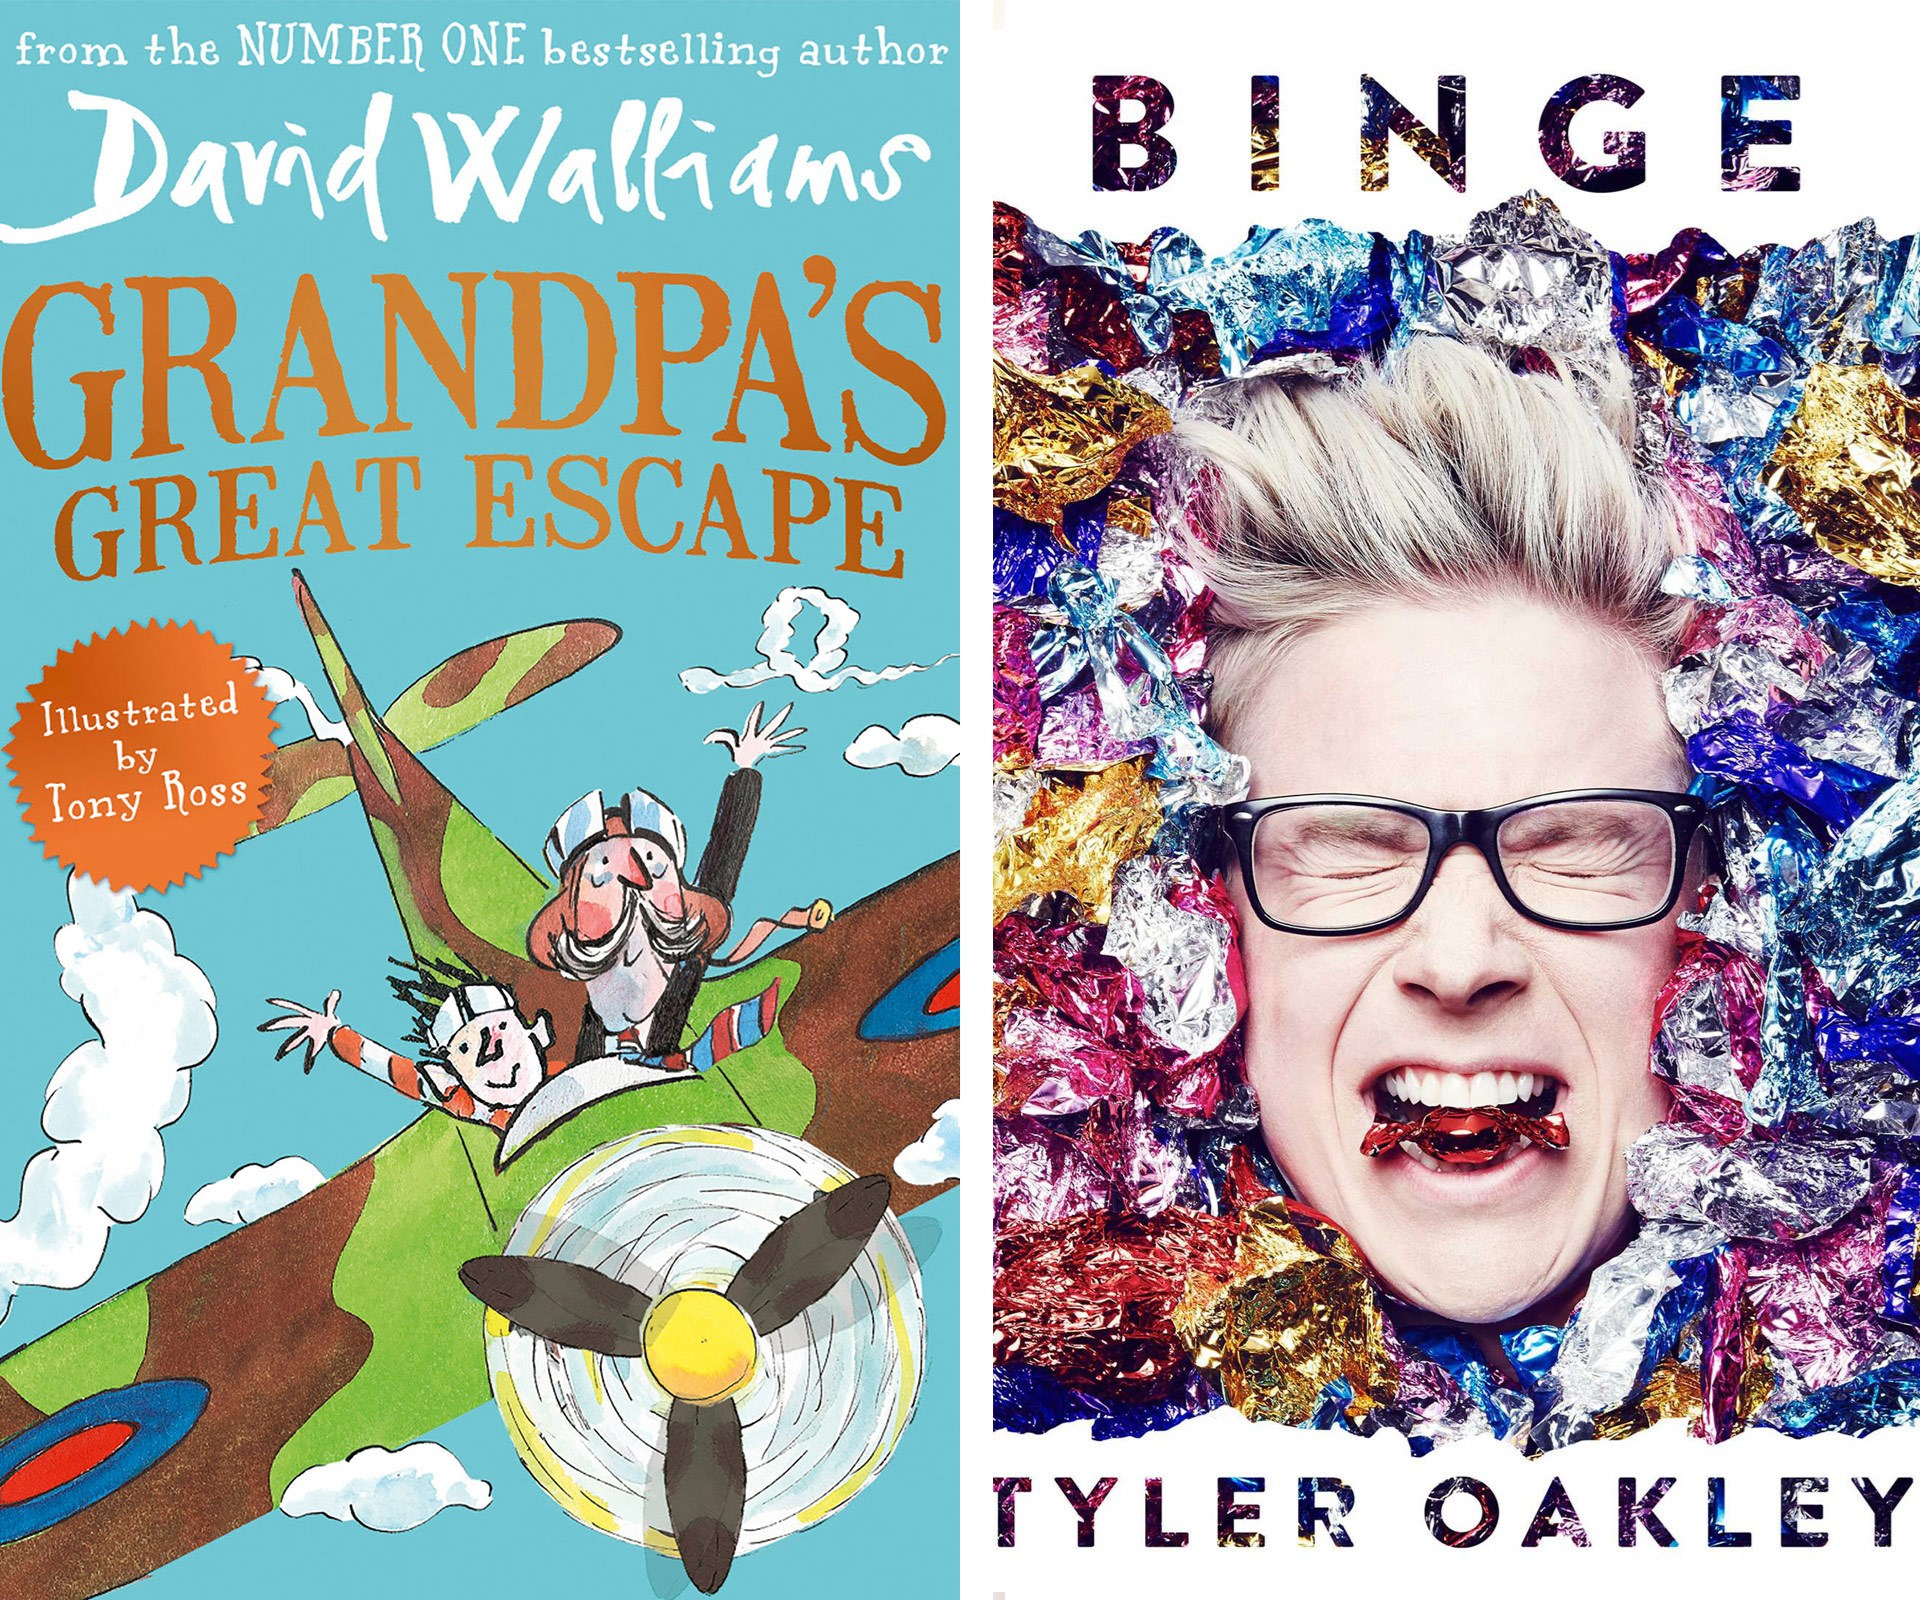 Your teen will love you if you get them David Walliam's hilarious new novel, *Grandpa's Great Escape*. Or for your celeb-obsessed relative, pick up a copy of Vlogger Tyler Oakley's *Binge*.